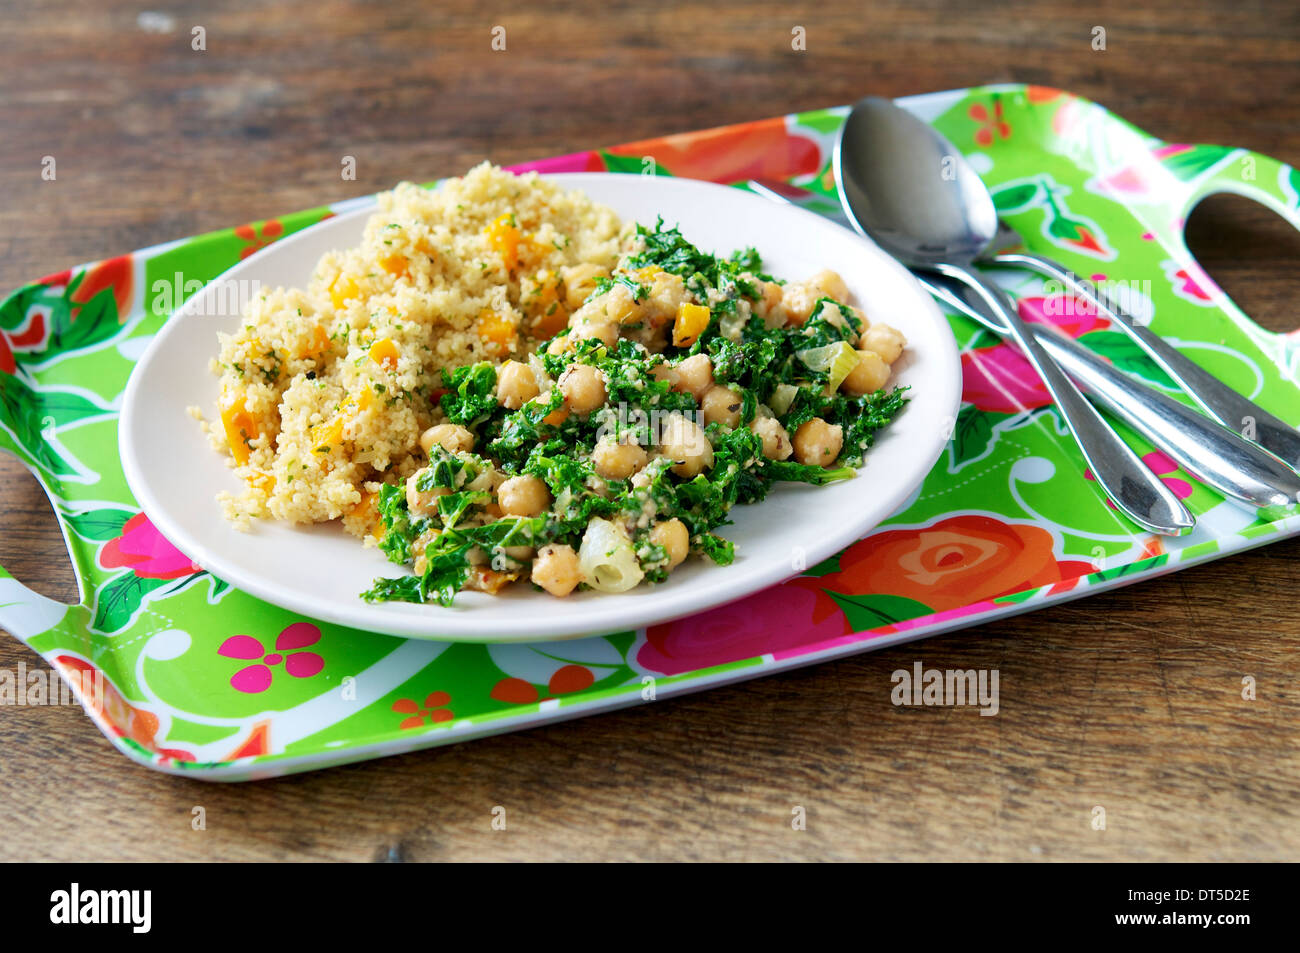 A hearty and filling meal with kale, cashew and chickpeas, served with confetti couscous. - Stock Image